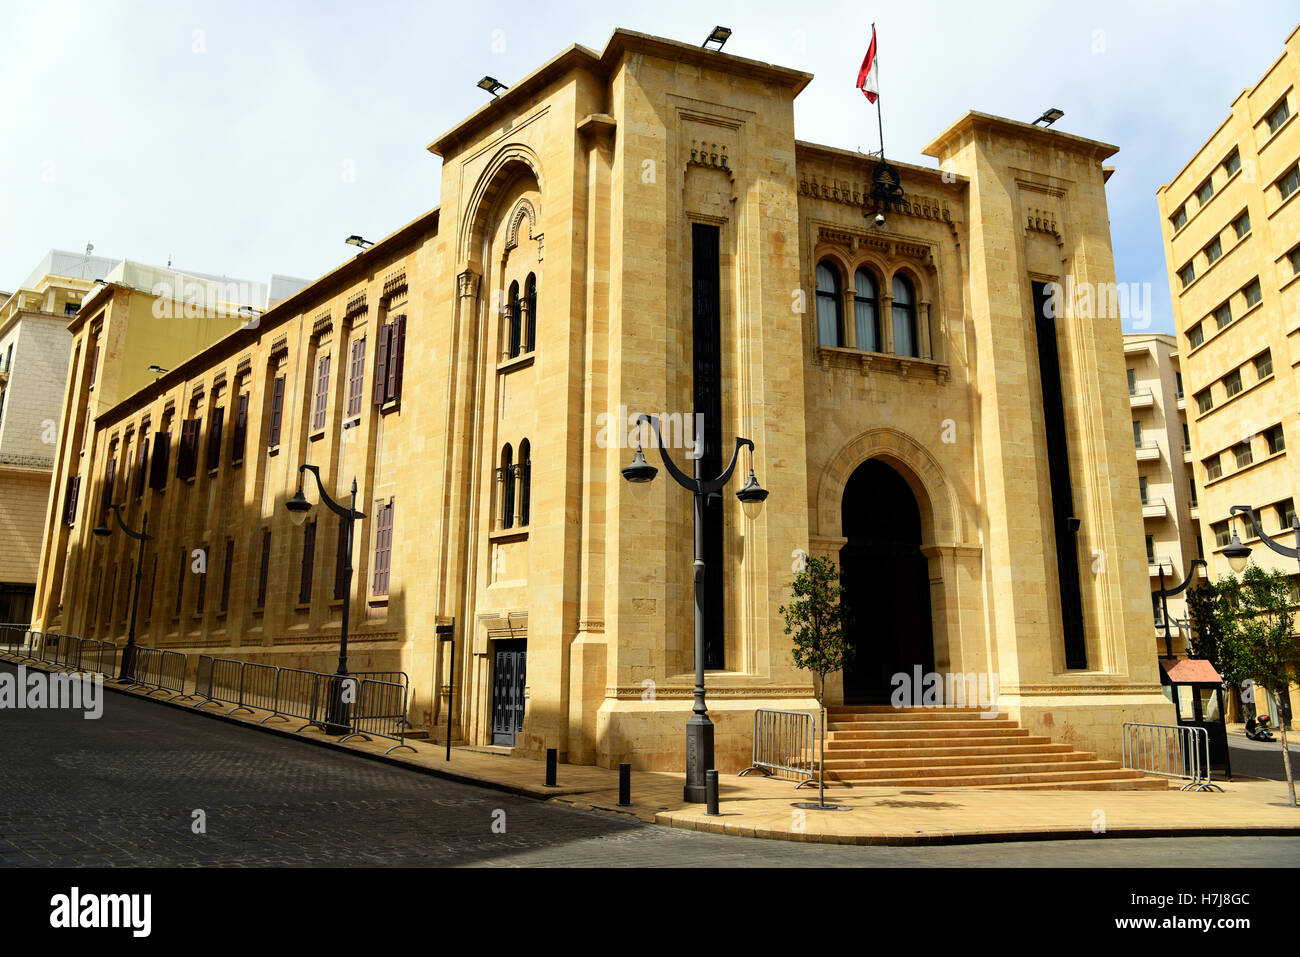 Bâtiment du Parlement européen, du centre-ville, Beyrouth, Liban. Photo Stock